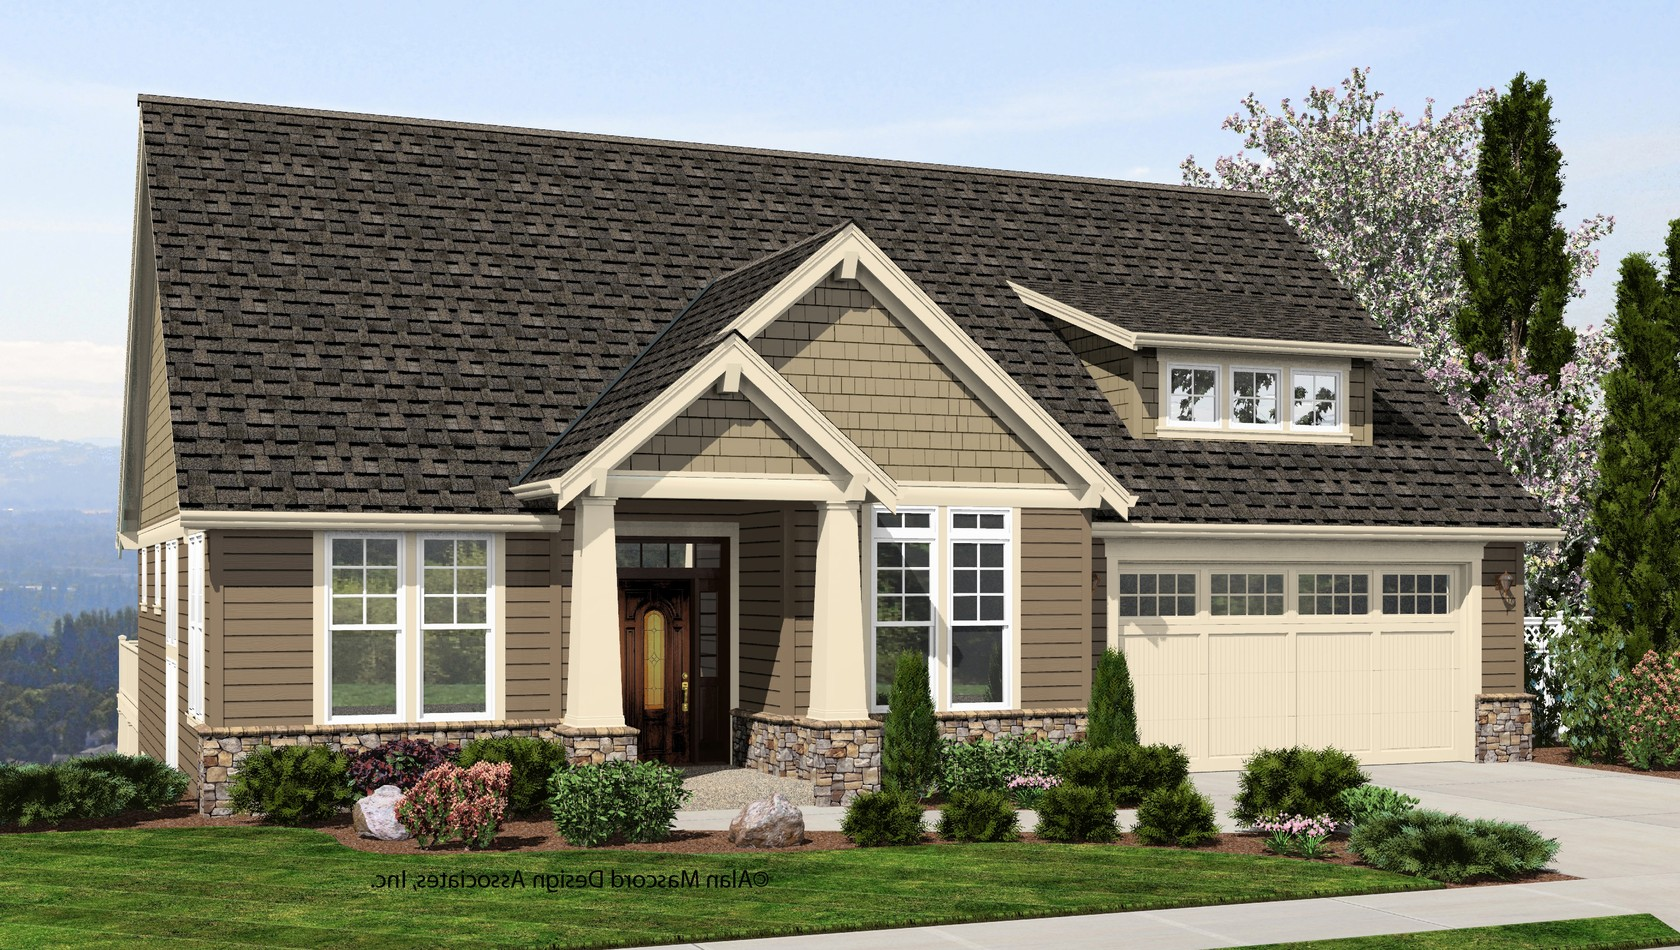 Mascord House Plan 1244: The Brandywine